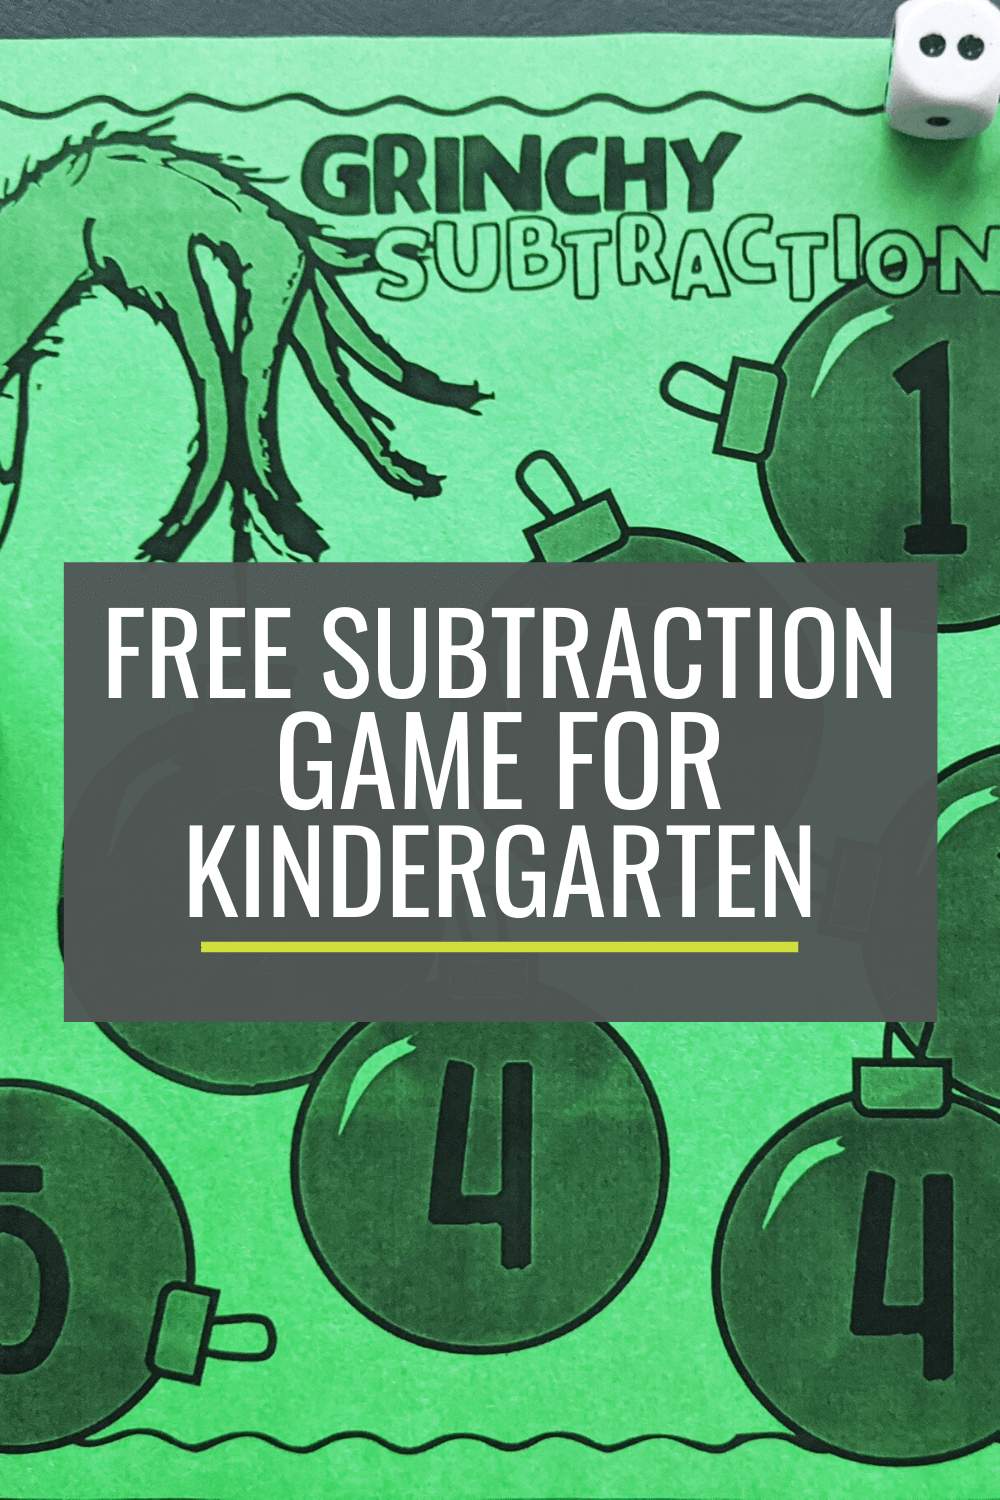 Free Grinchy Subtraction Bump Game